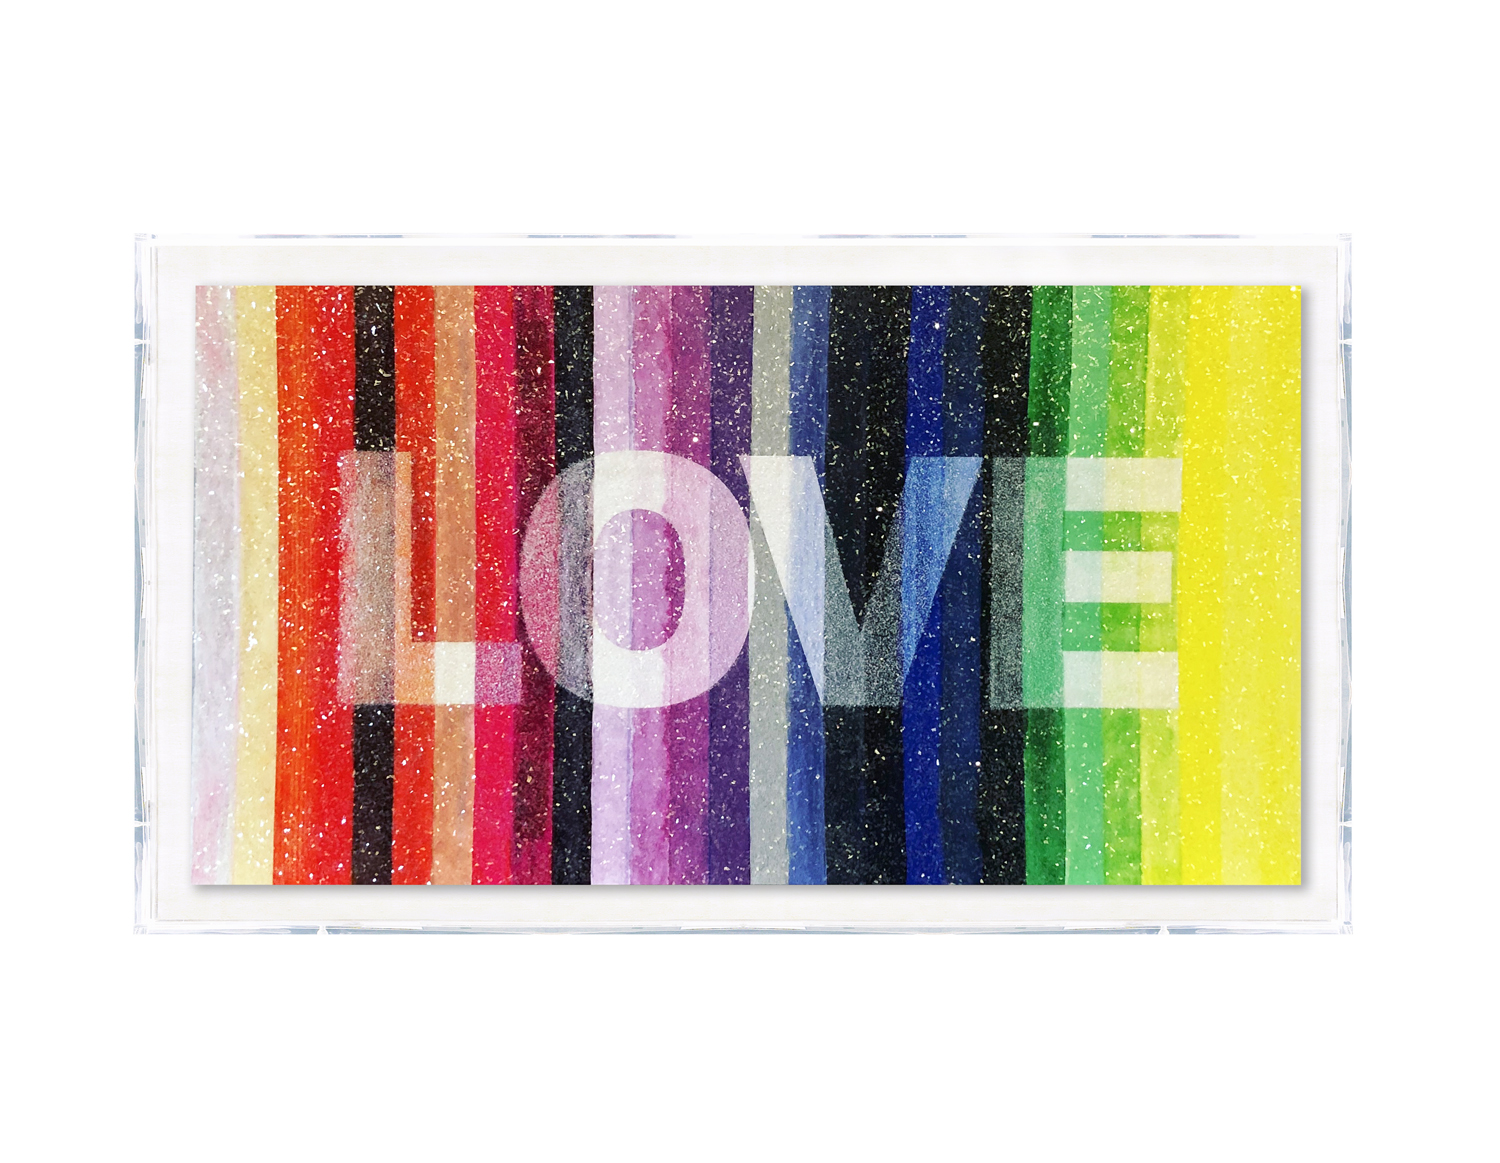 """LOVE,"" LIMITED EDITION EMBELLISHED METAL PRINT WITH GLASS CRYSTALS."